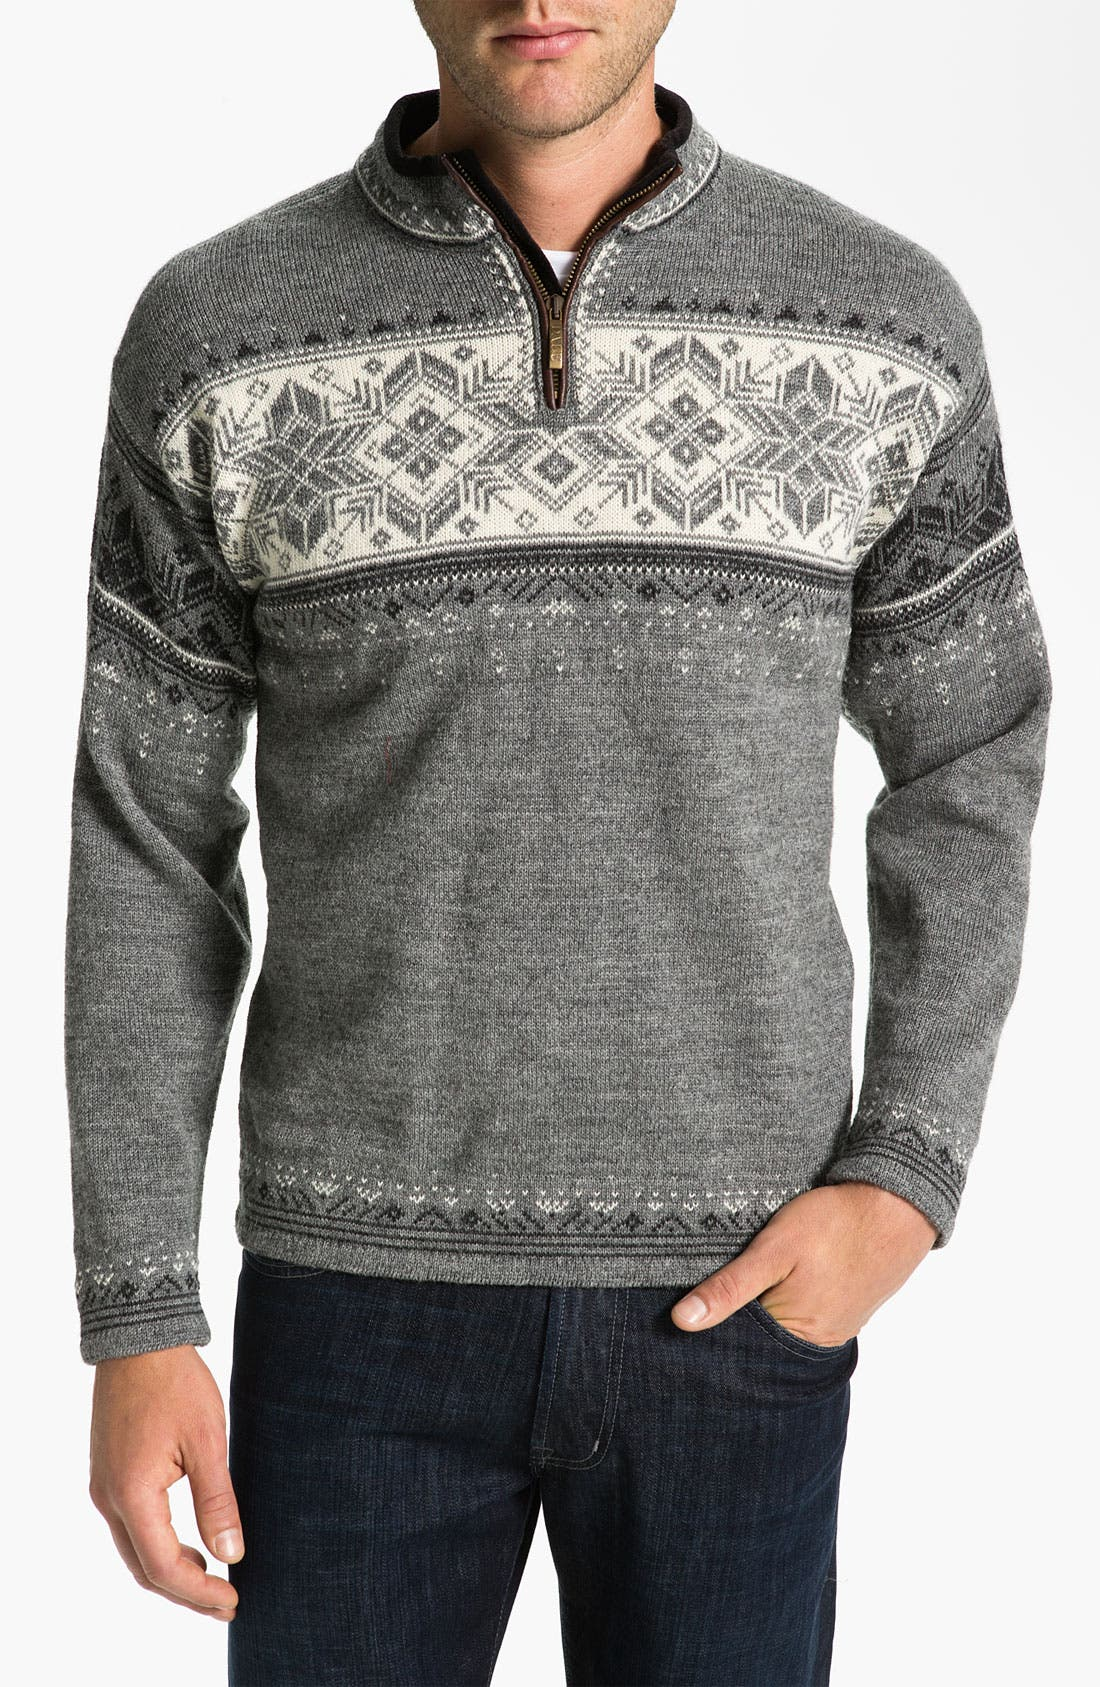 Alternate Image 1 Selected - Dale of Norway 'Blyfjell' Quarter Zip Wool Sweater